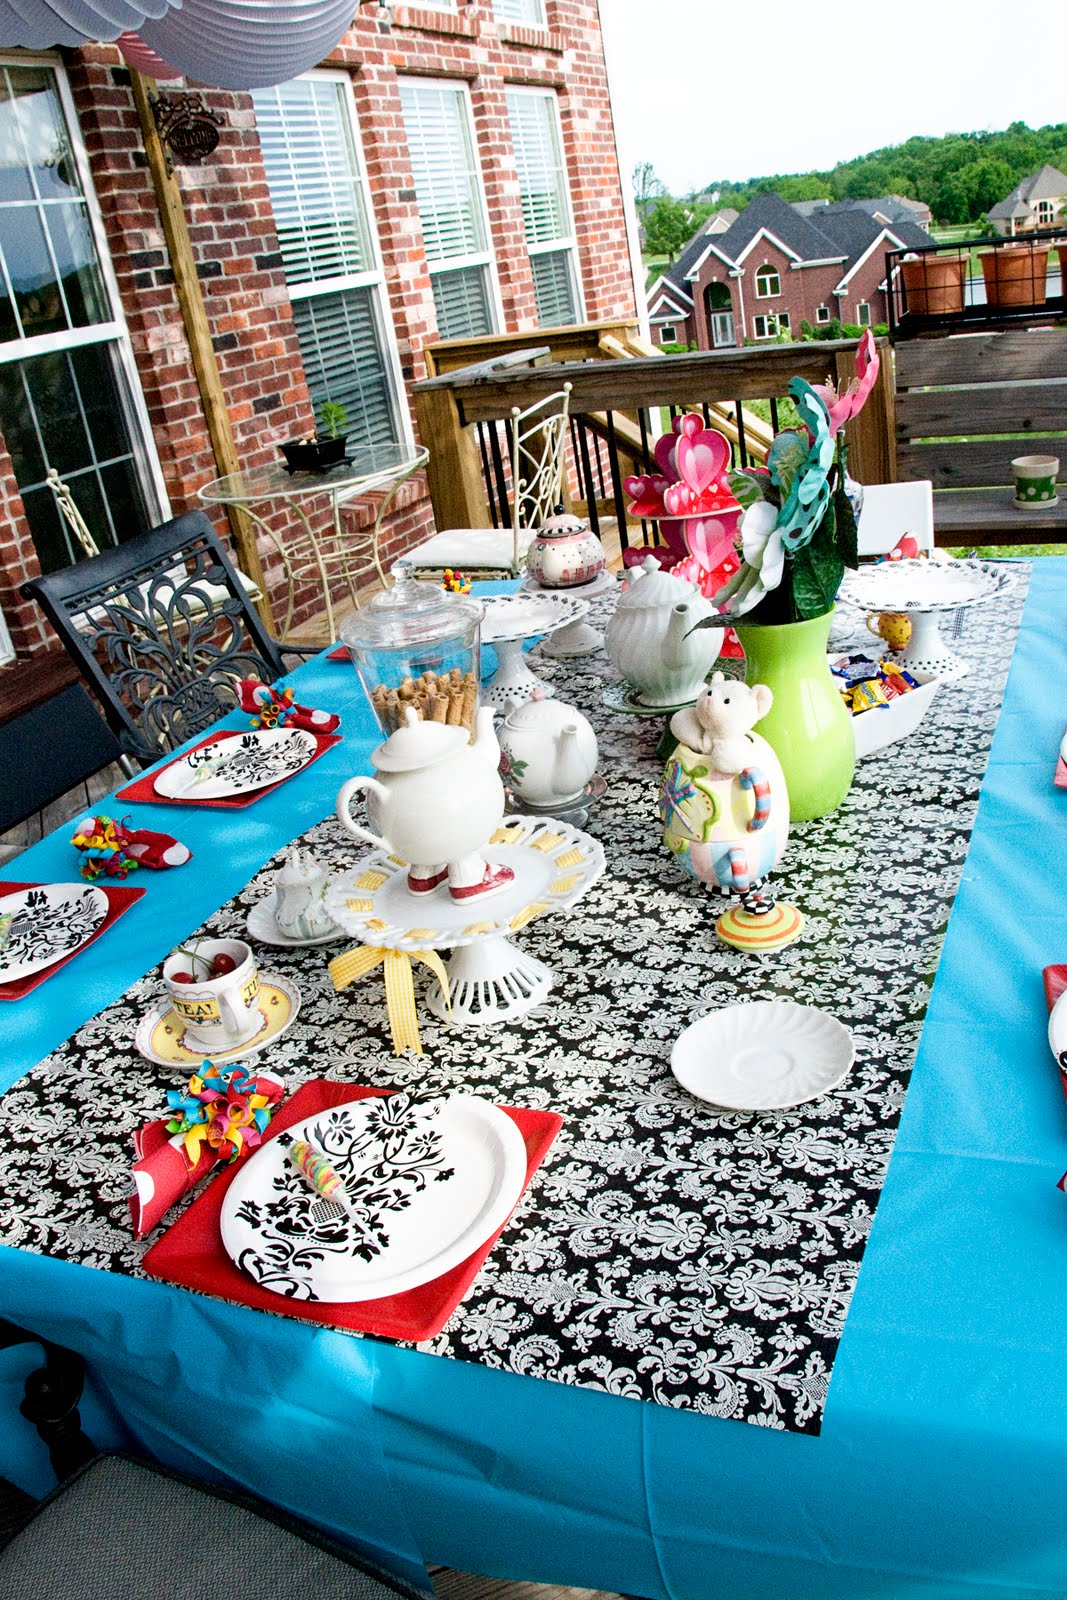 Inexpensive Tablecloth Idea!